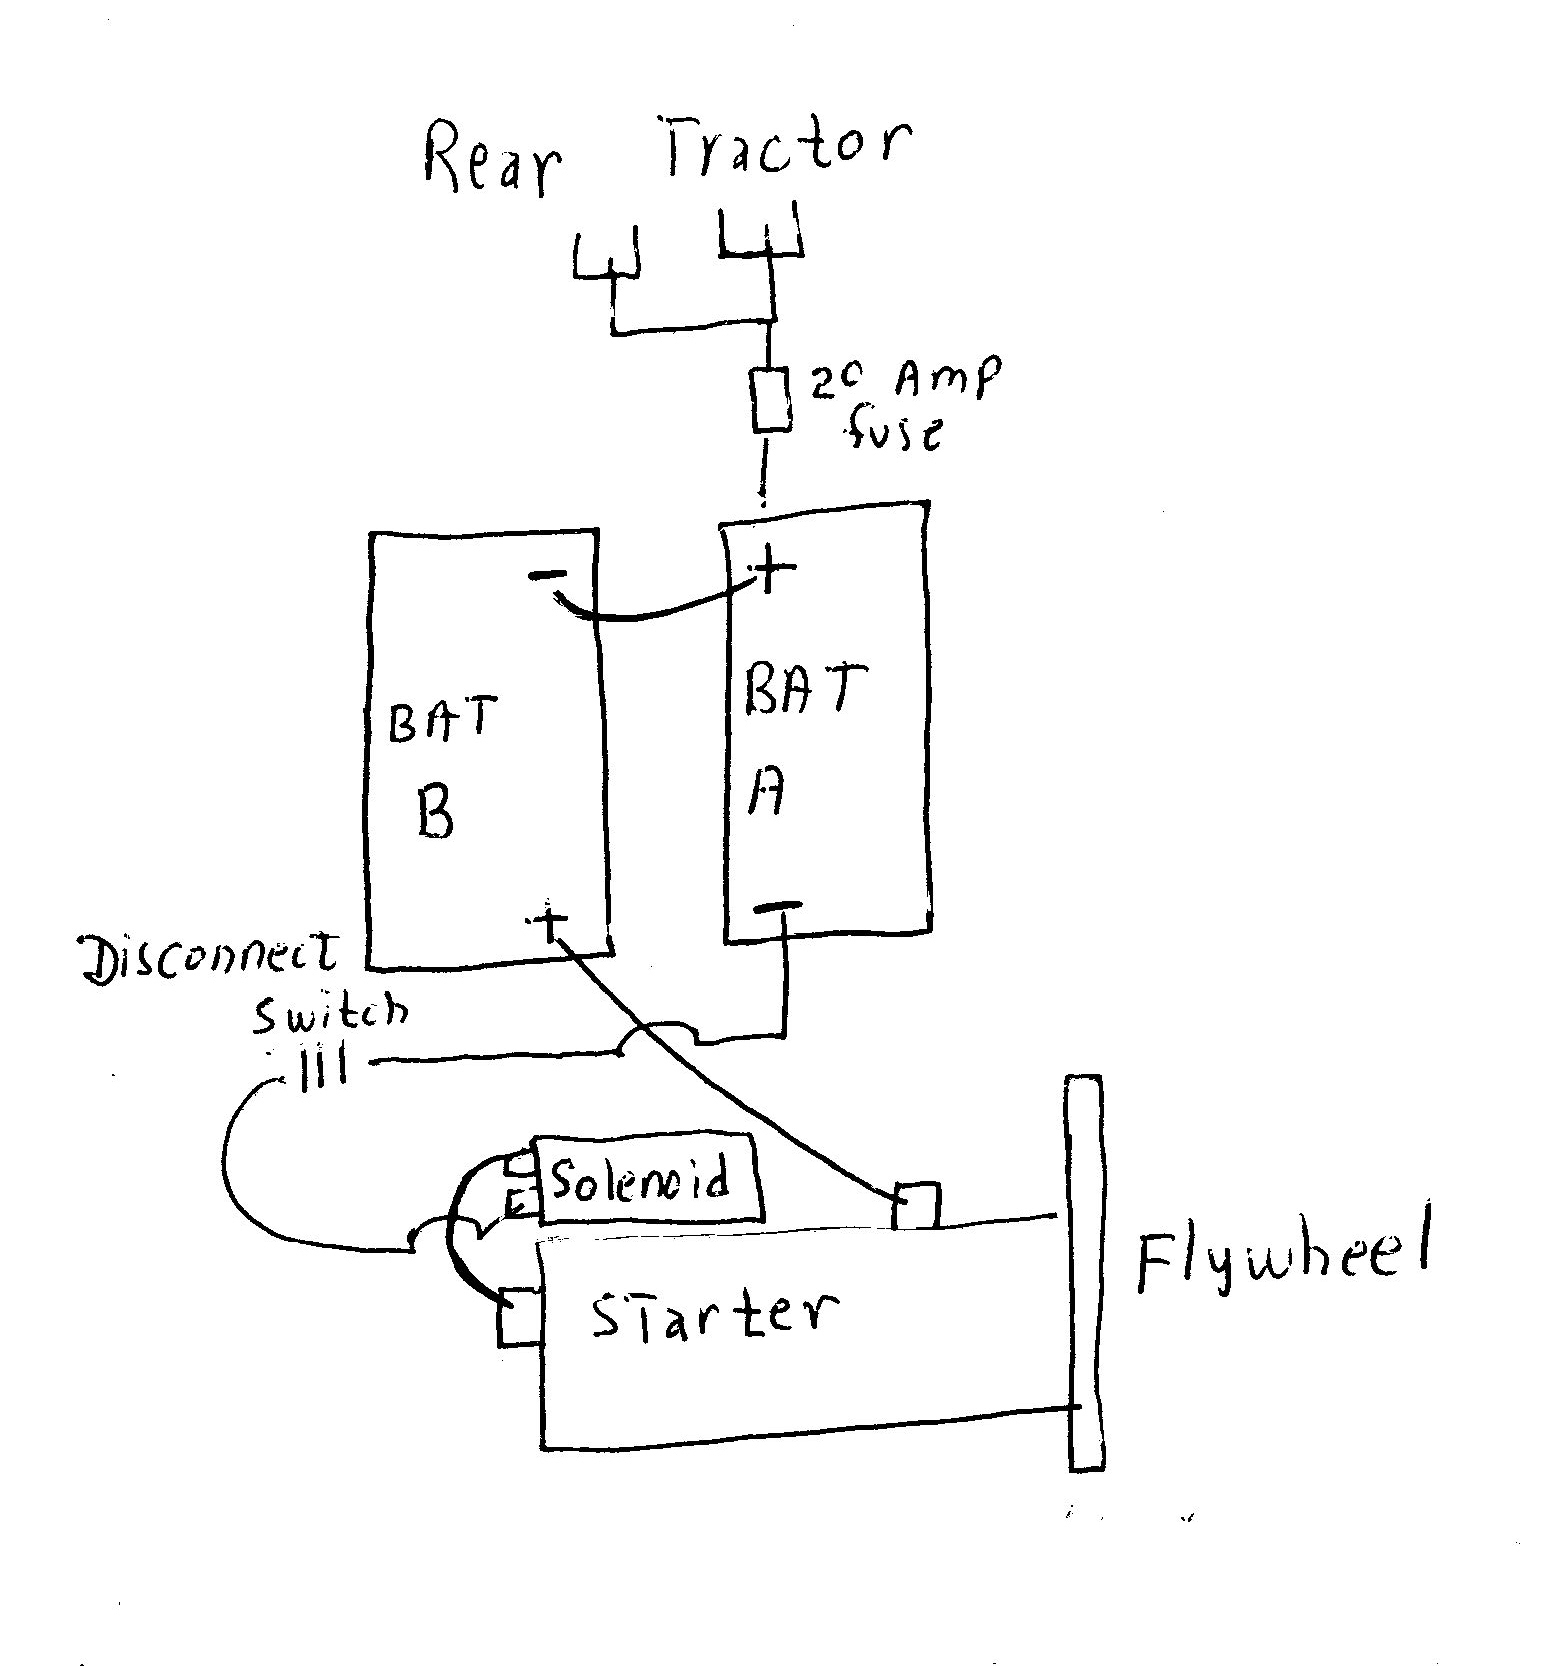 medium resolution of ford 8n generator wiring wiring diagram dom ford 8n conversion kits ford 8n 6 volt solenoid wiring